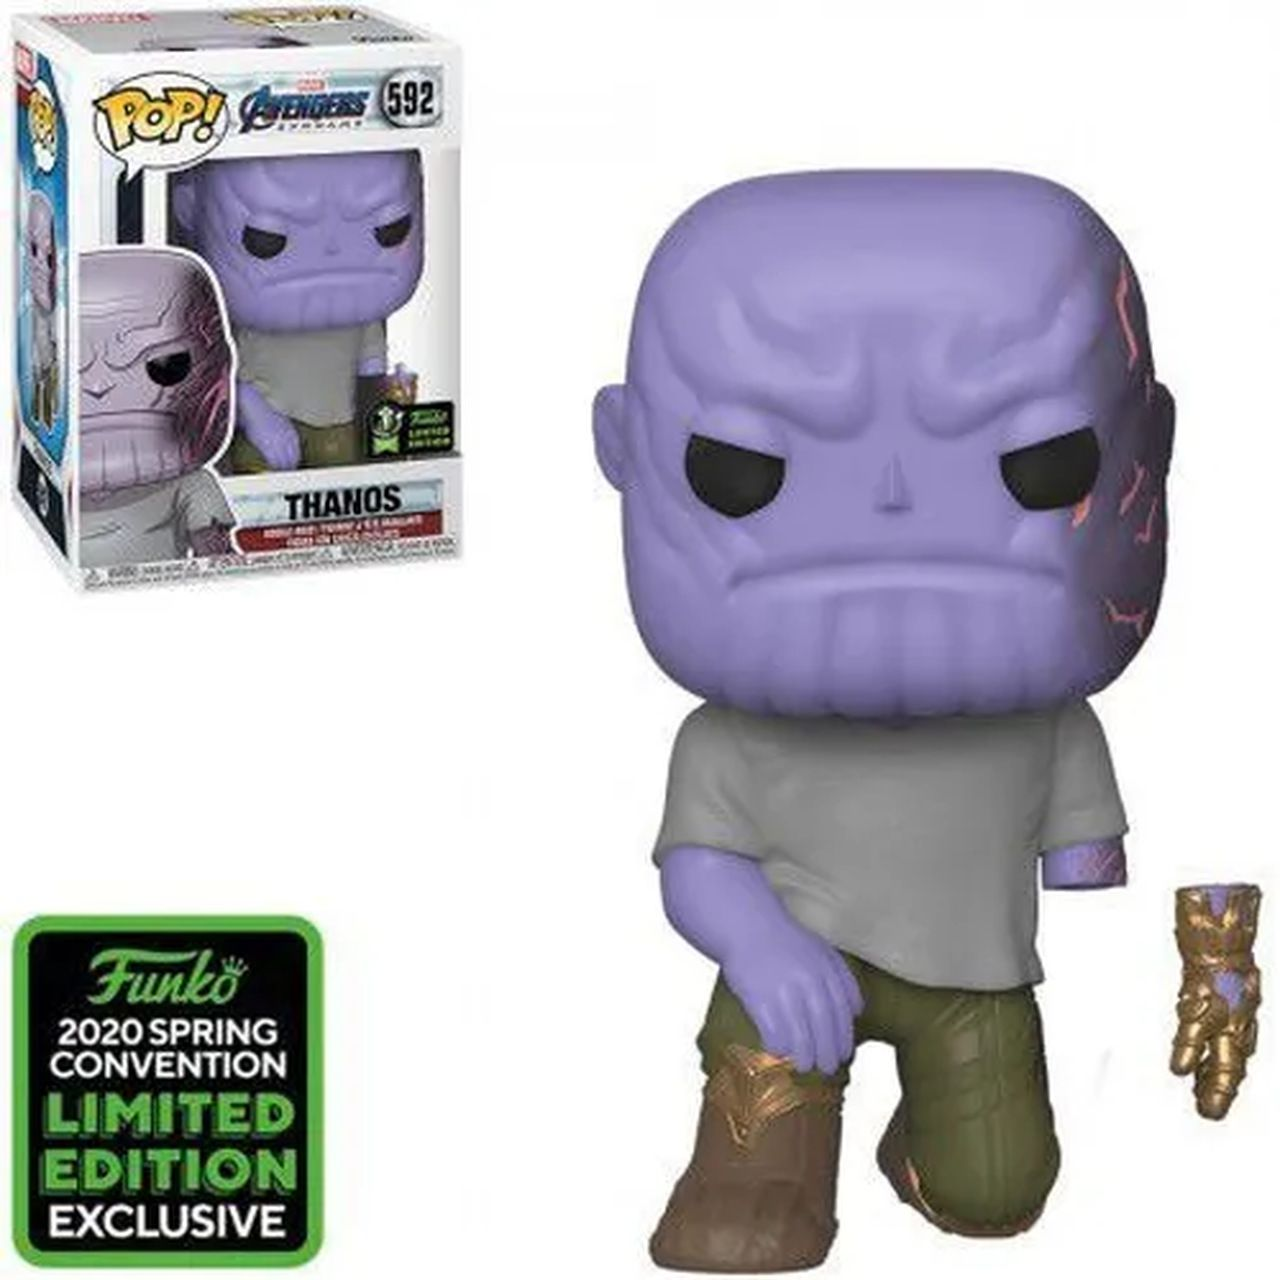 Funko Pop! Thanos: Vingadores Ultimato (Avengers End Game) Exclusivo #592 - Funko